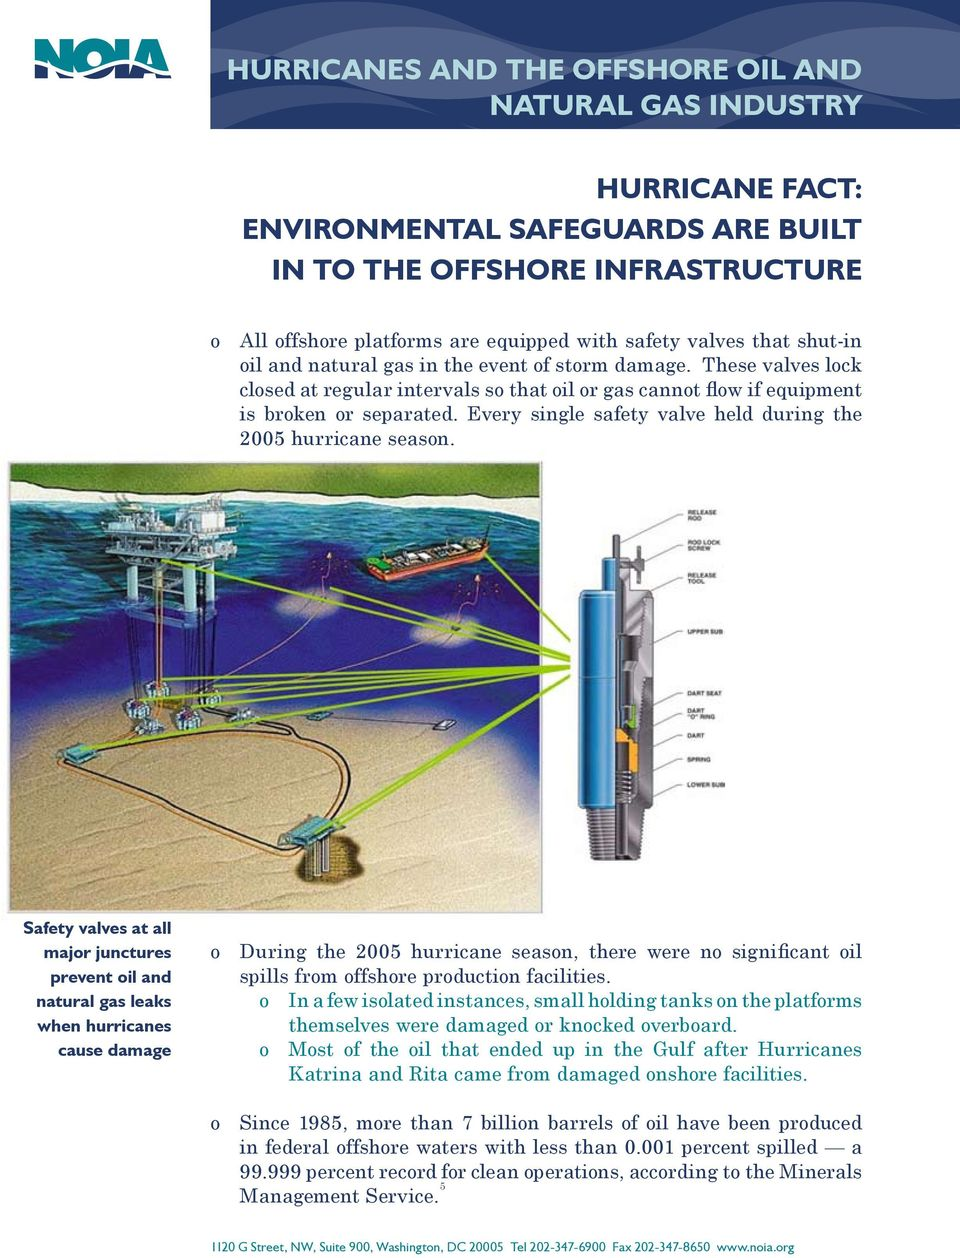 Safety valves at all major junctures prevent oil and natural gas leaks when hurricanes cause damage o During the 2005 hurricane season, there were no significant oil spills from offshore production